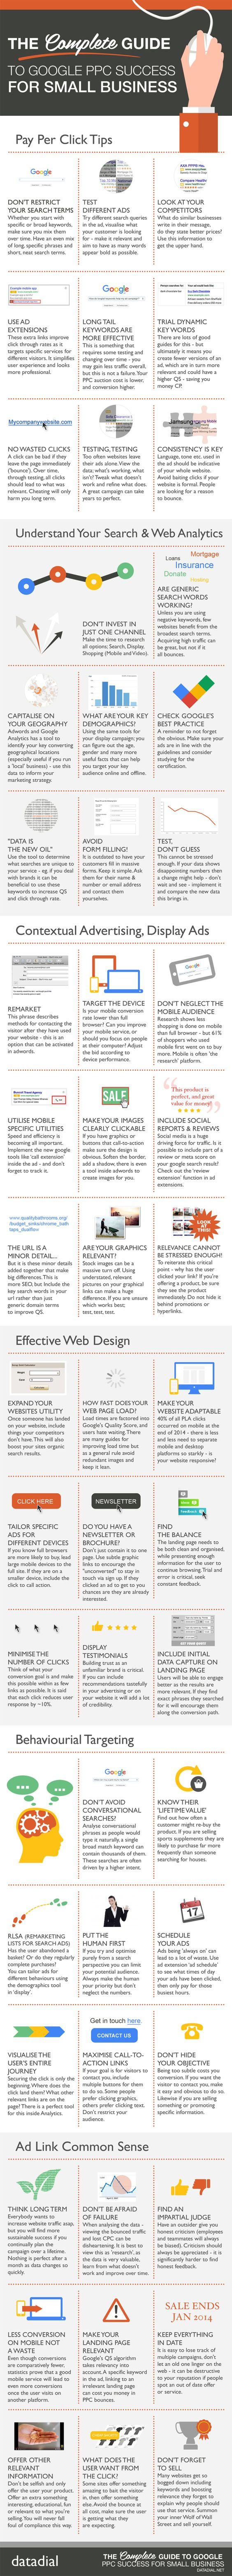 53 Steps to Google Adwords Success: The Ultimate Pay per Click Guide #Infographic